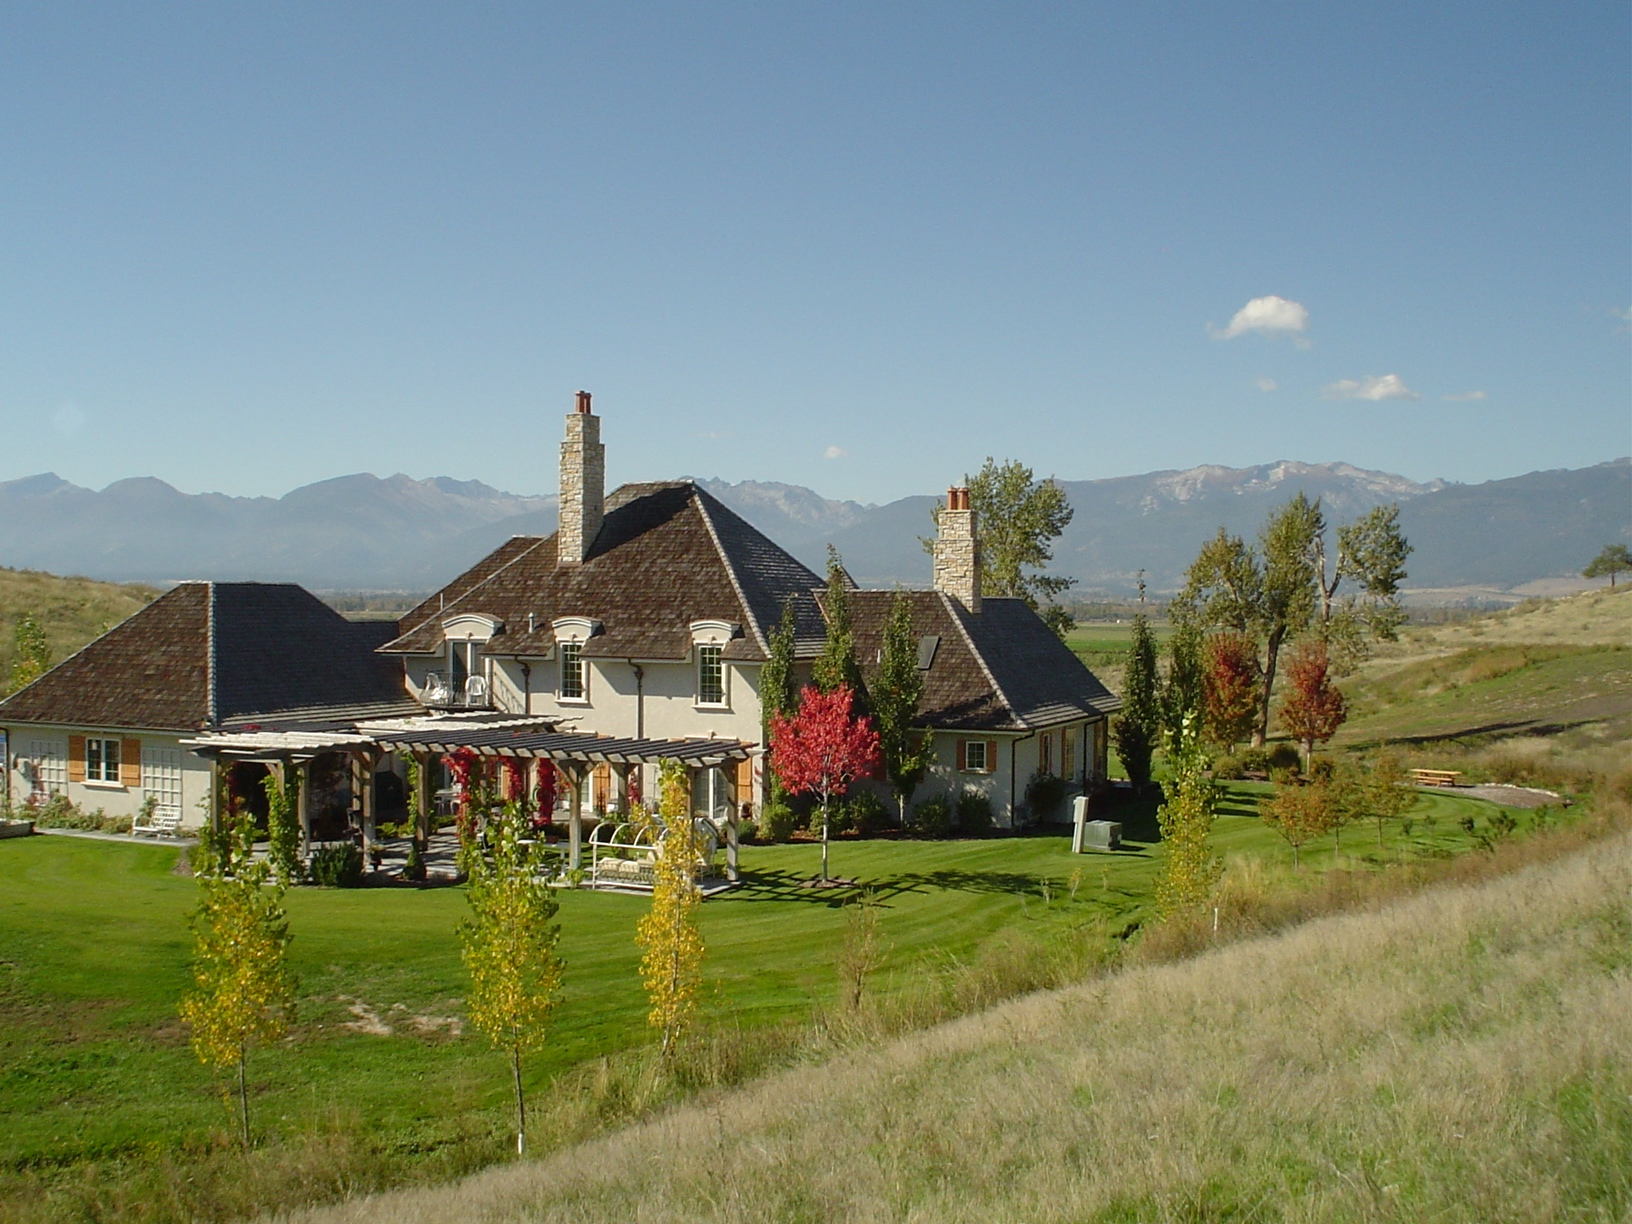 Single Family Home for Sale at Petite Chateau 421 Spooner Creek Lane Stevensville, Montana, 59870 United States